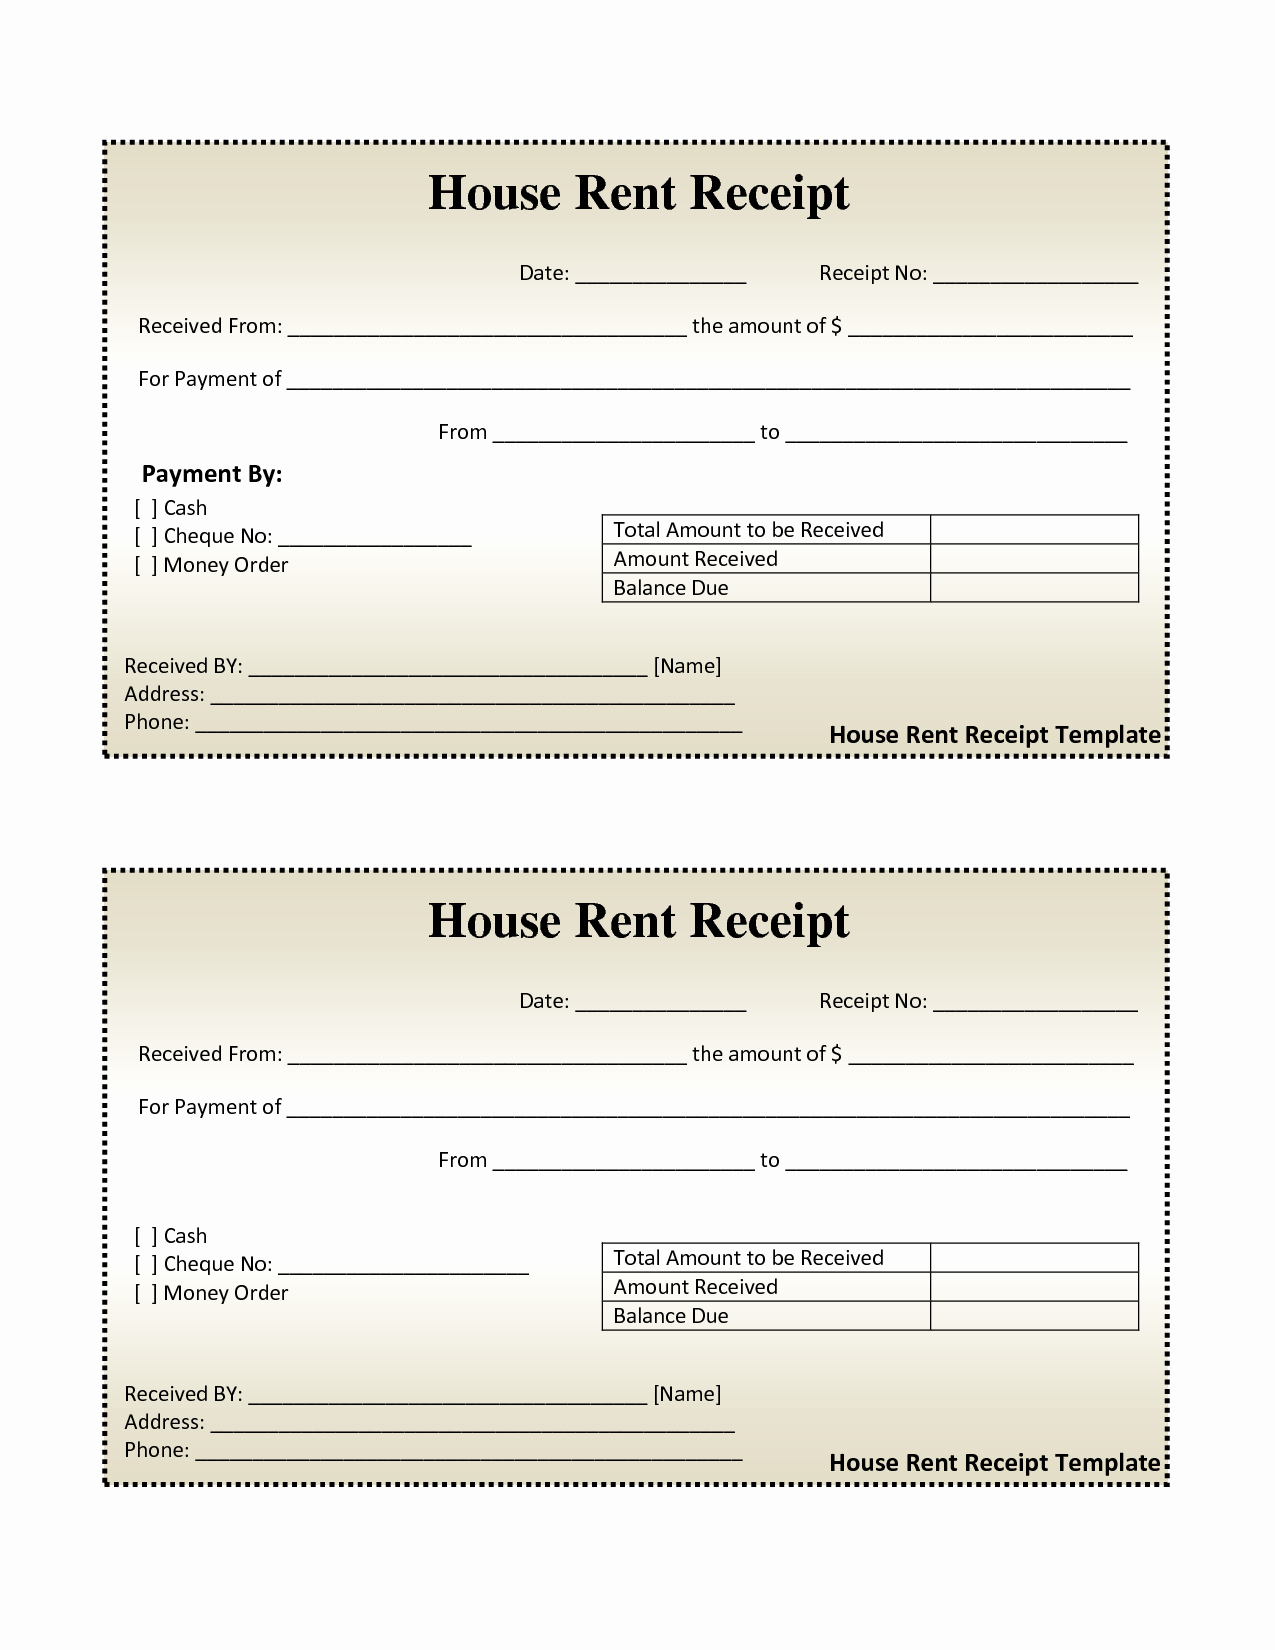 Free Rent Receipt Template Word Inspirational Free House Rental Invoice